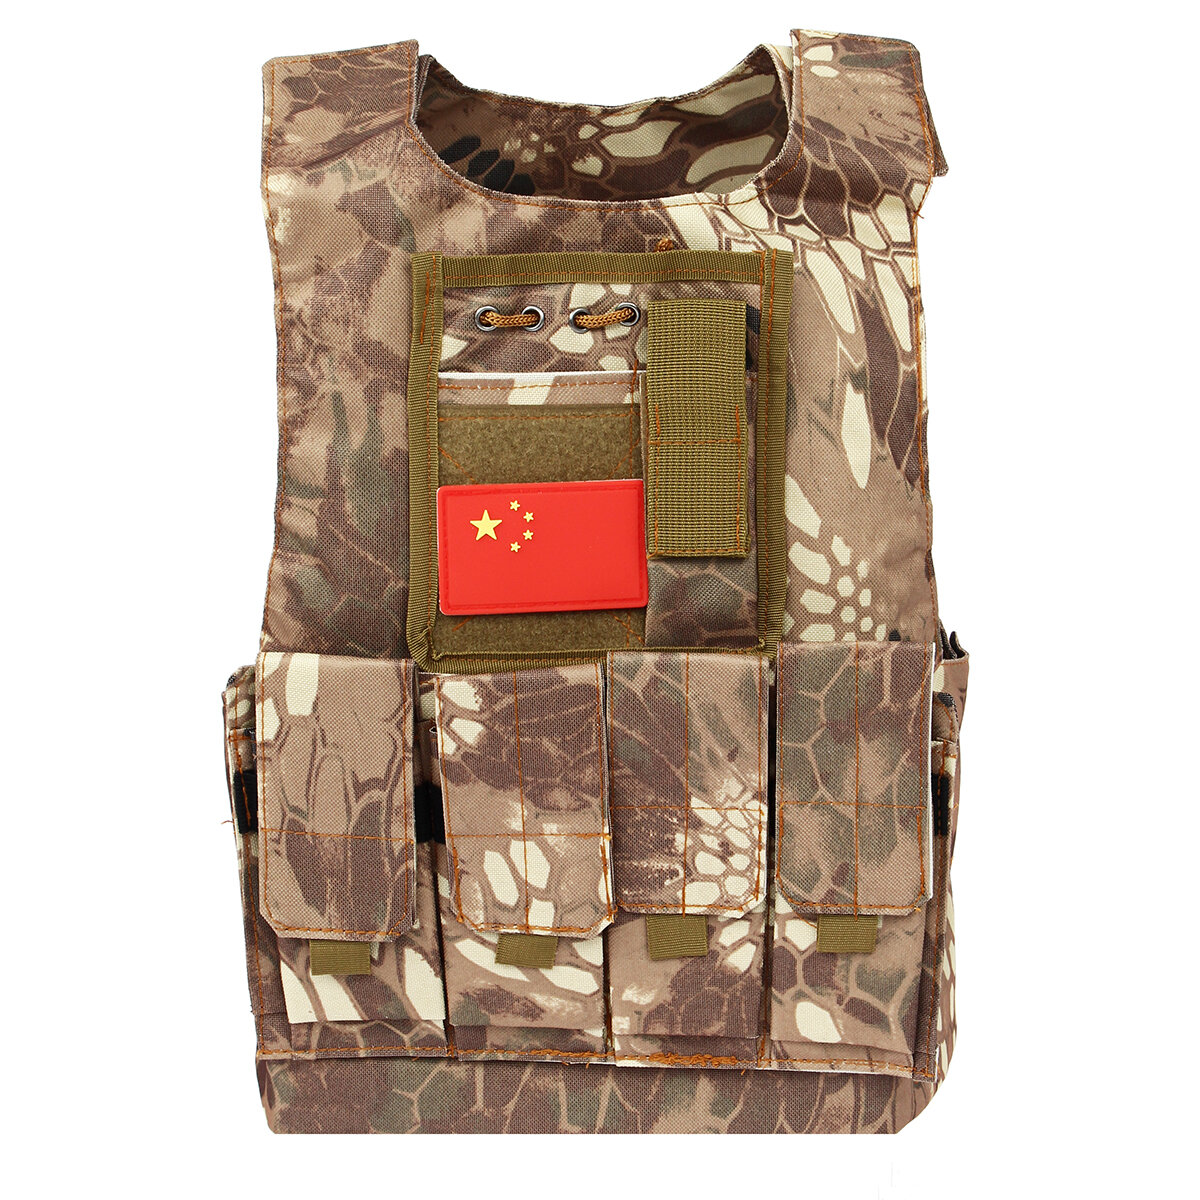 7a7e6a6724740 Kids Children Tactical Military Vest Assault Combat Gear Army CS Play  Hunting Protective Aemor COD